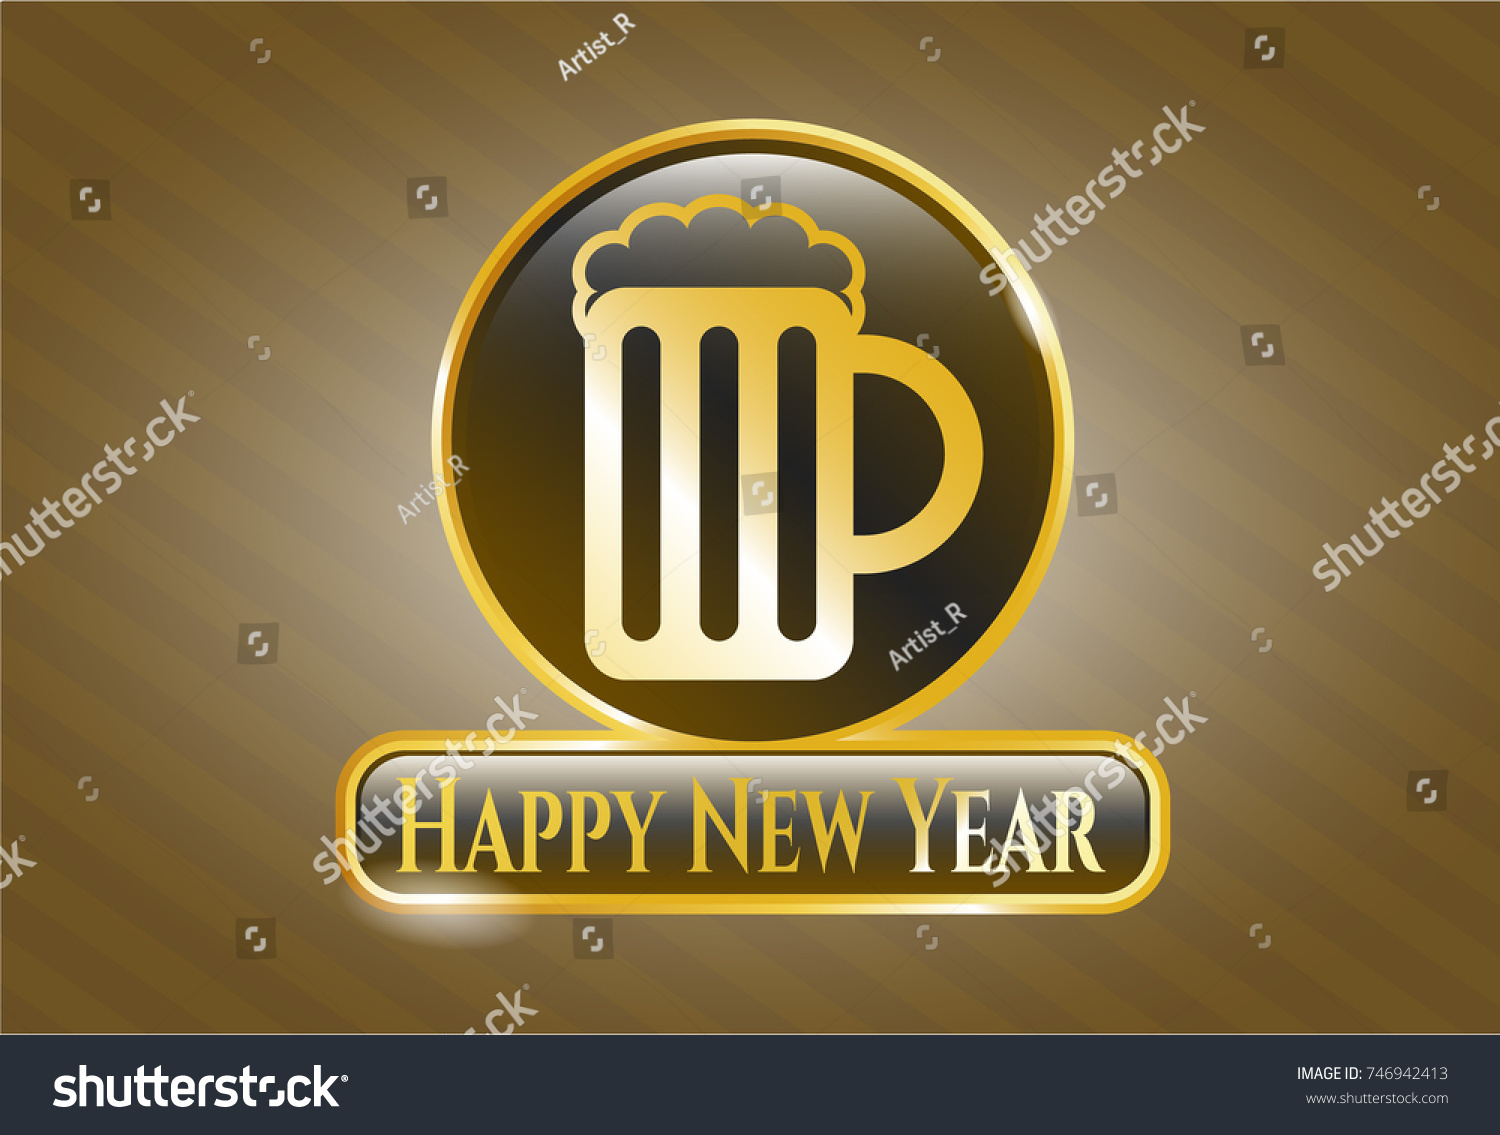 gold shiny badge with beer jar icon and happy new year text inside